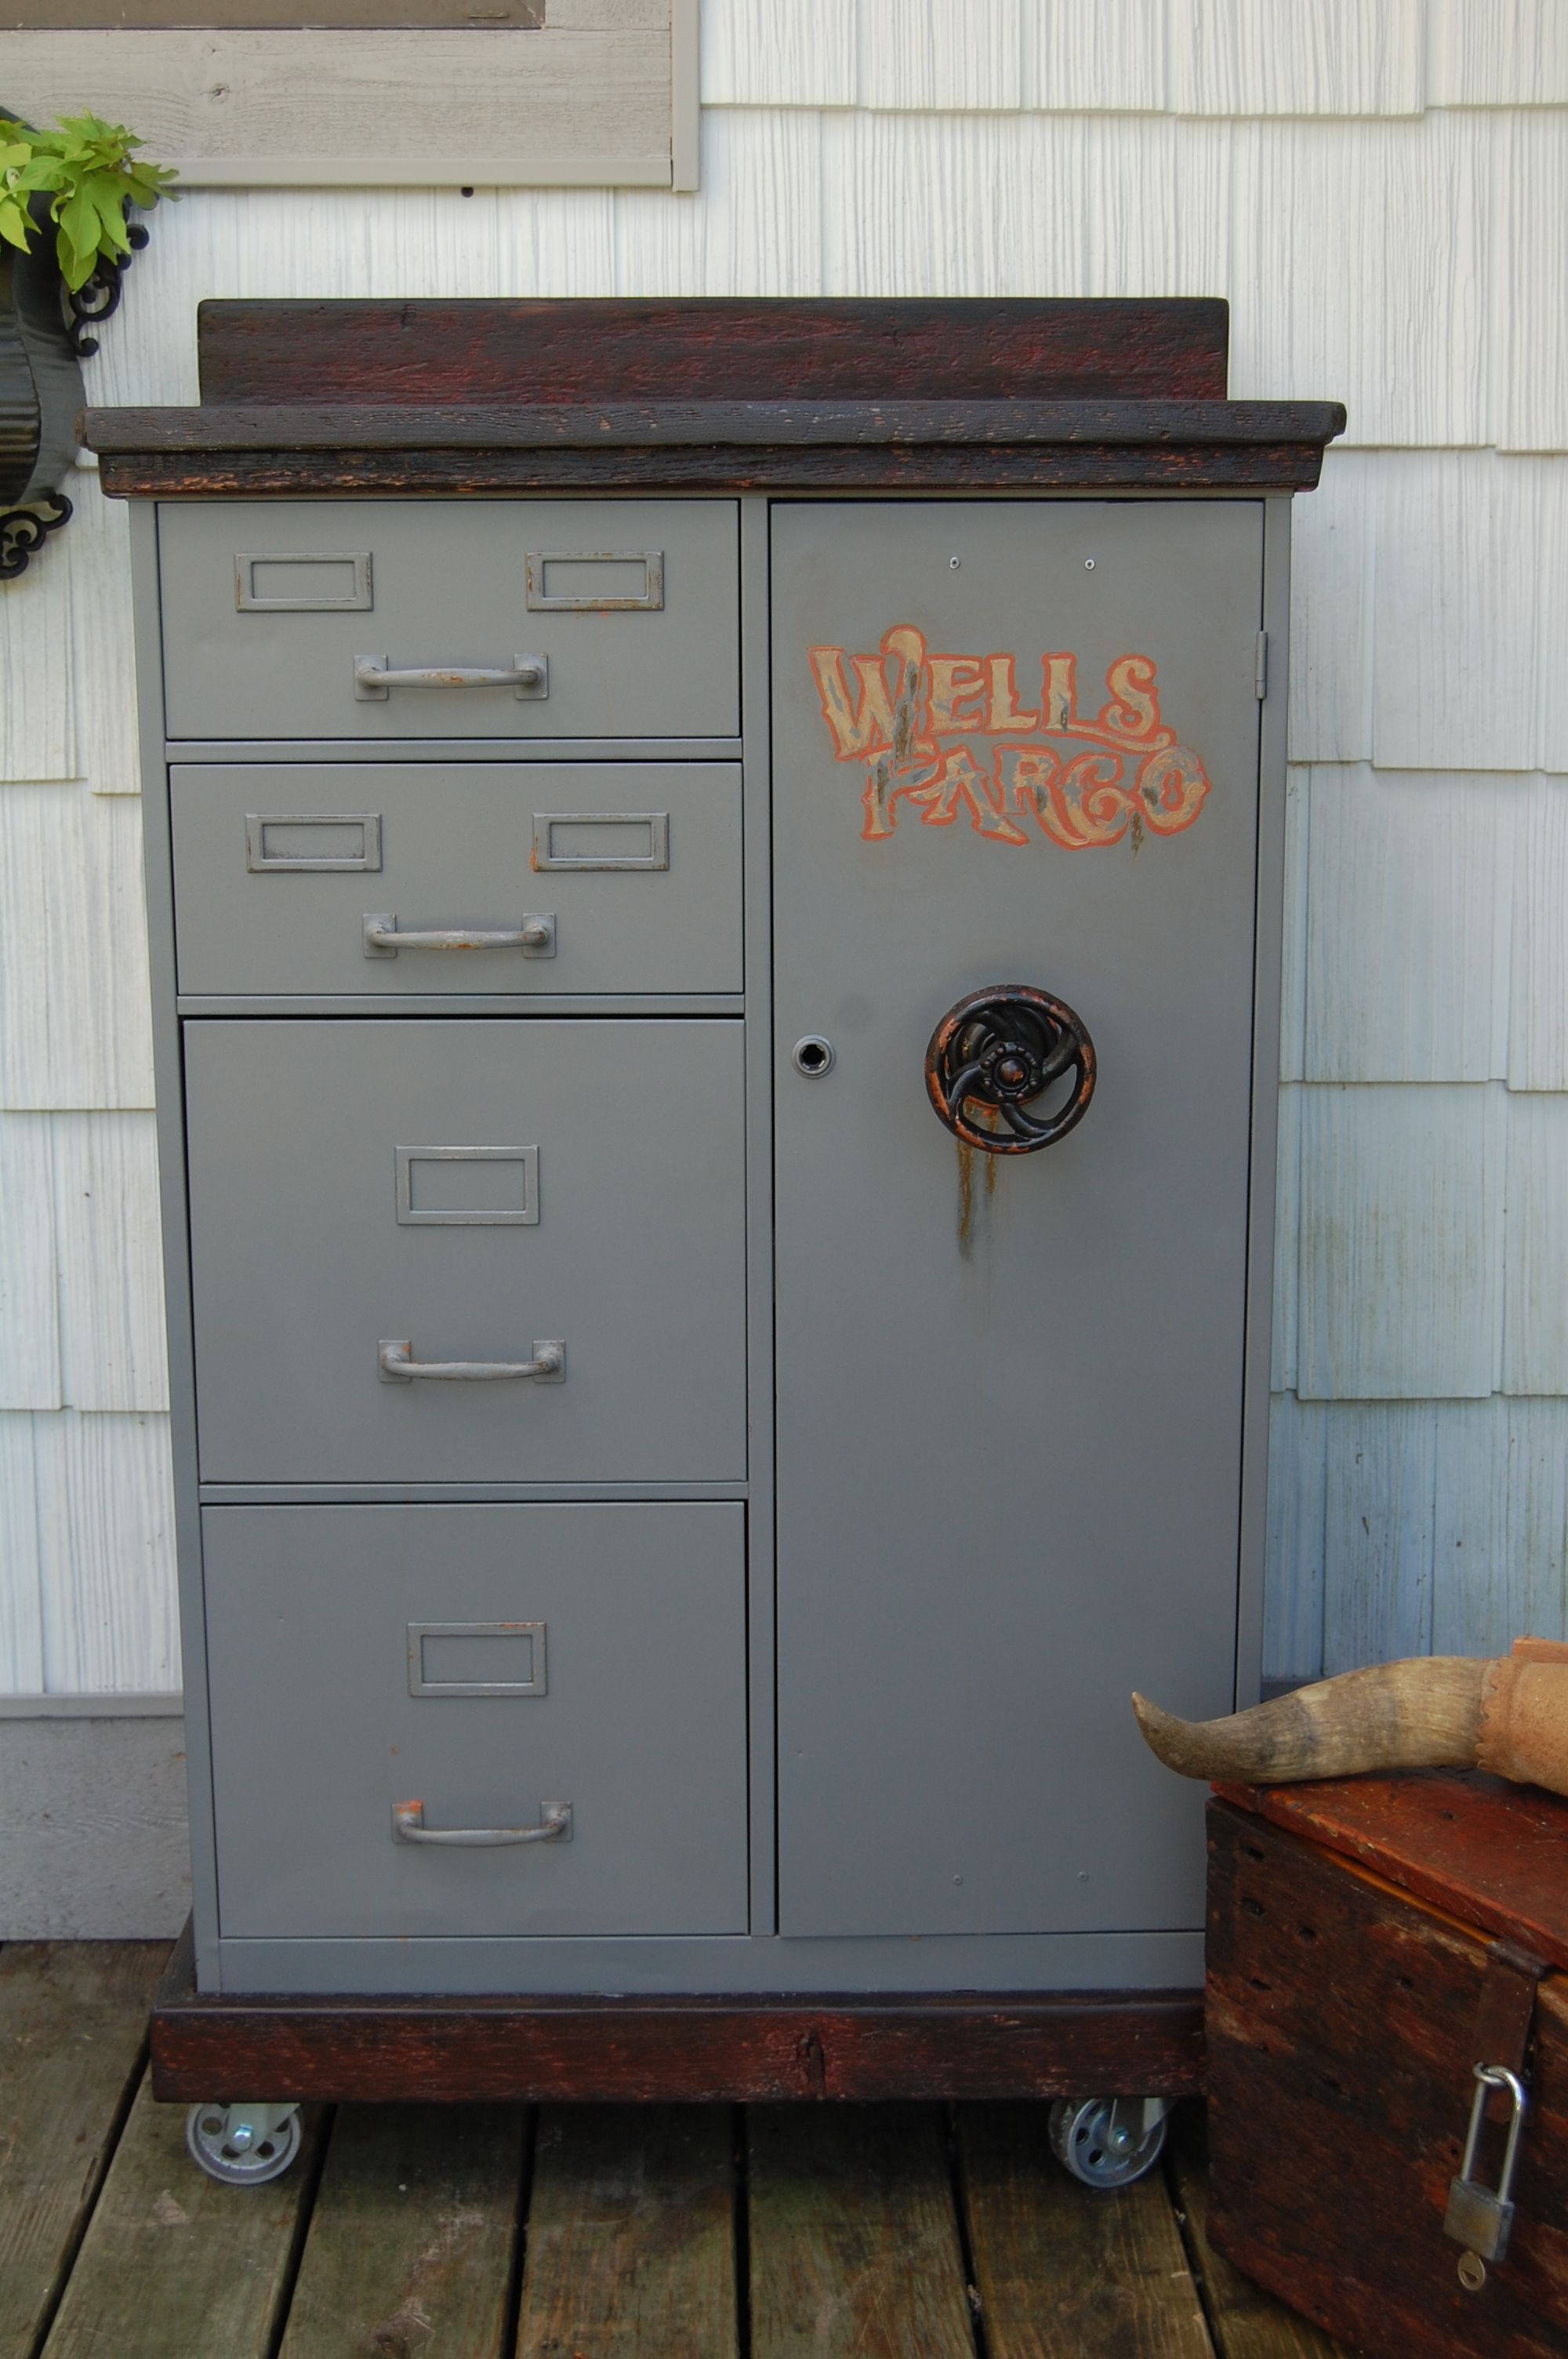 Vintage Repurposed Steelmaster File Cabinet With Steel Wheels Barn Wood Top And Hand Painted Wells Fargo L Vintage Repurposed Office Seating Home Furnishings